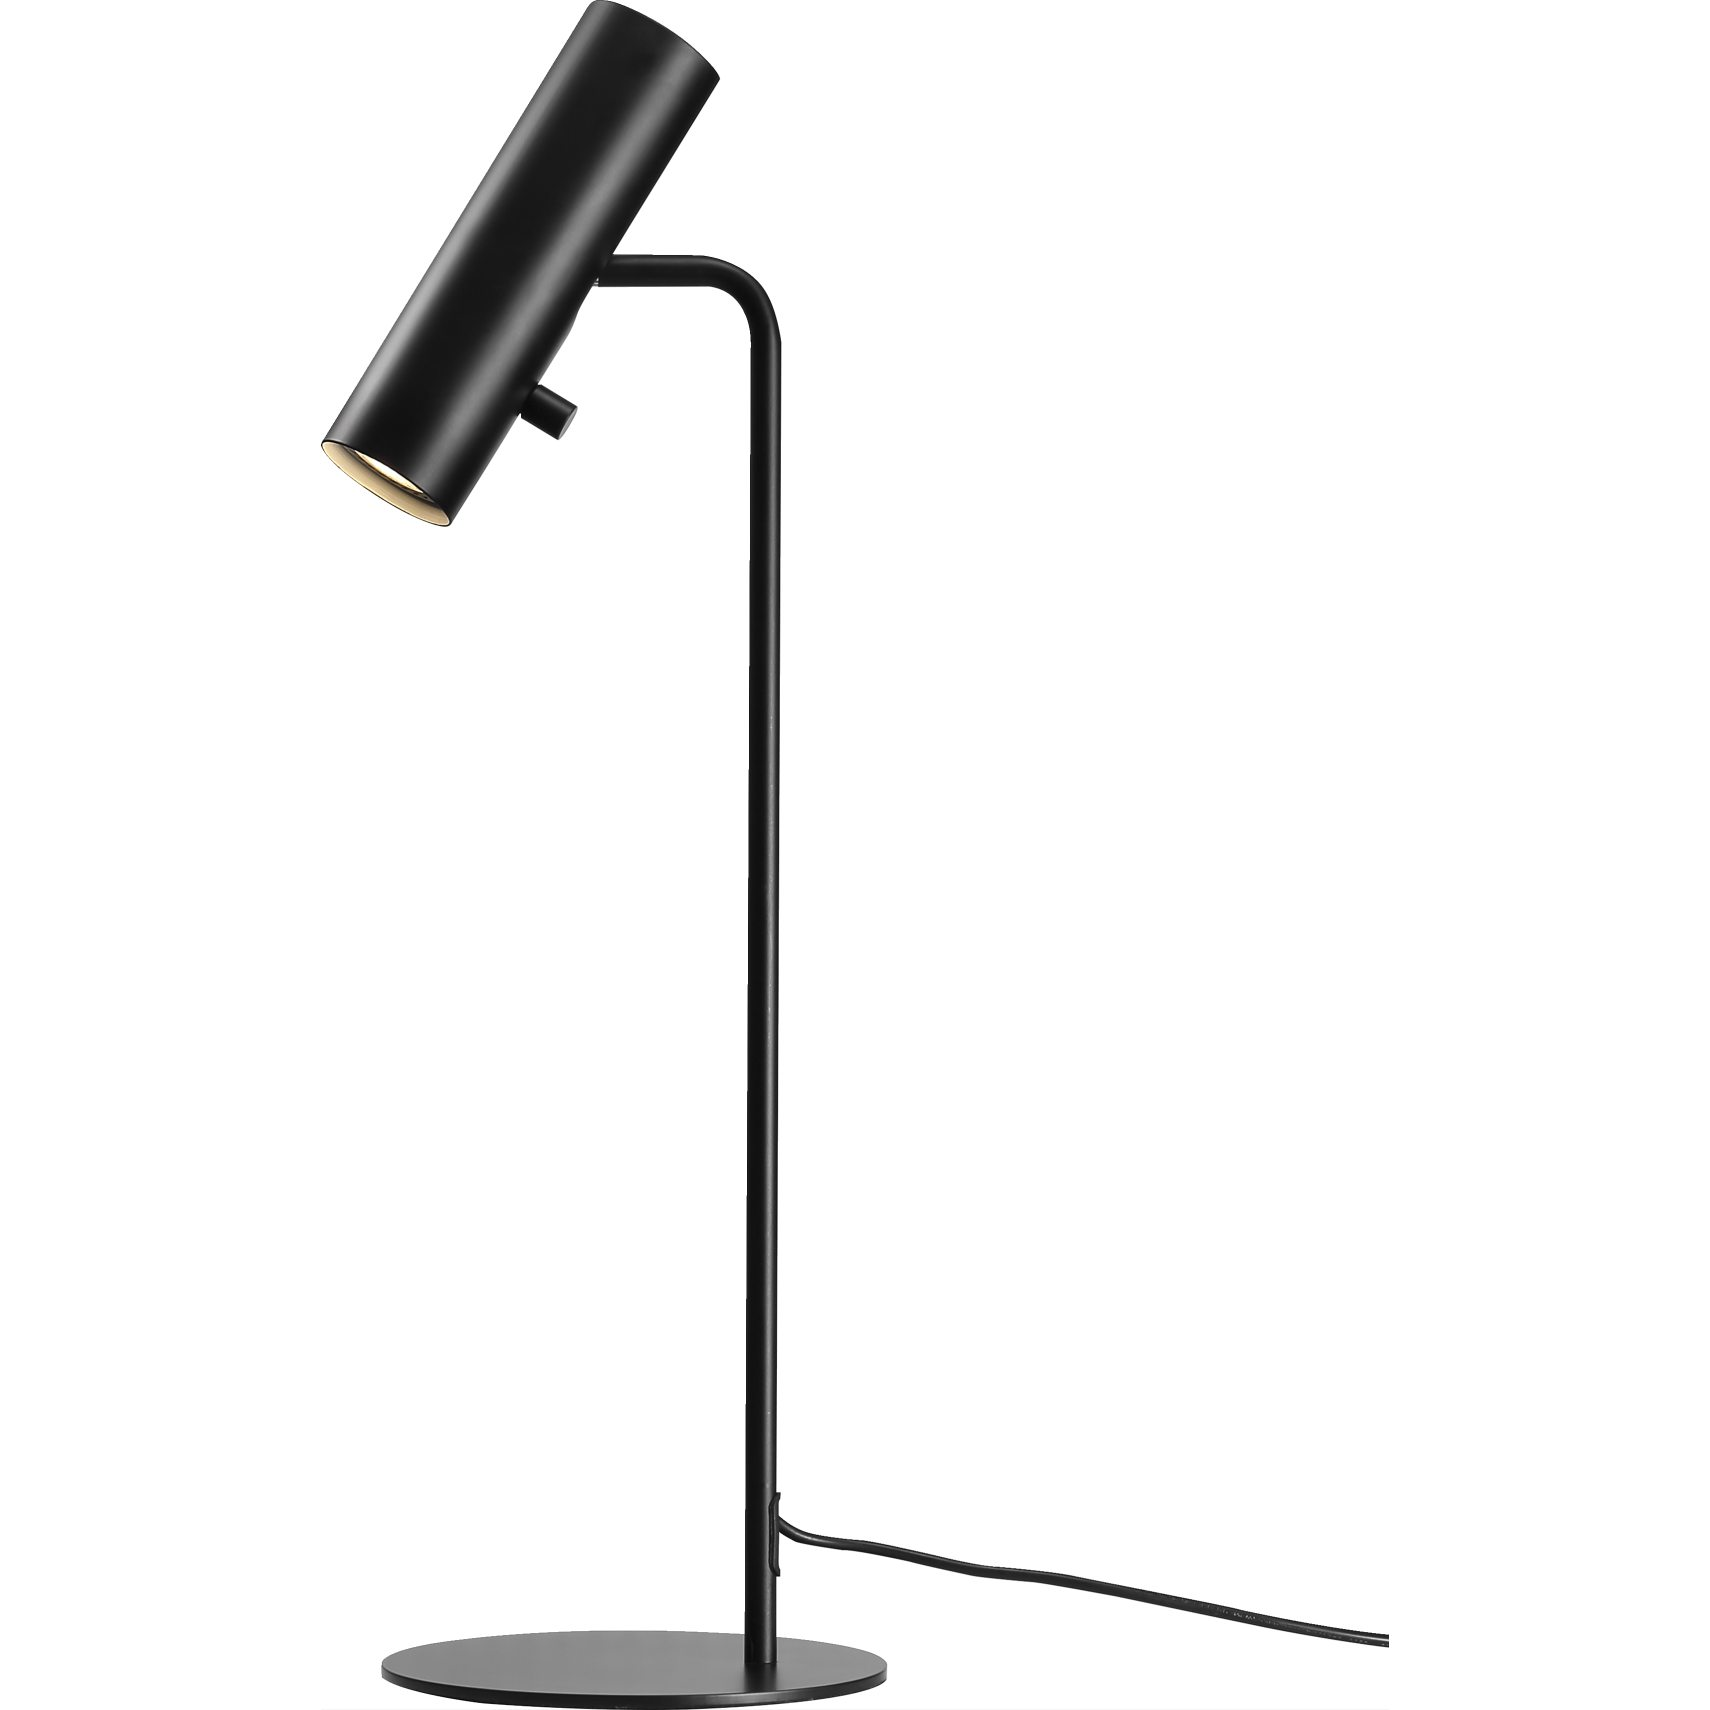 MIB Bordlampe - Sort metal og sort ledning